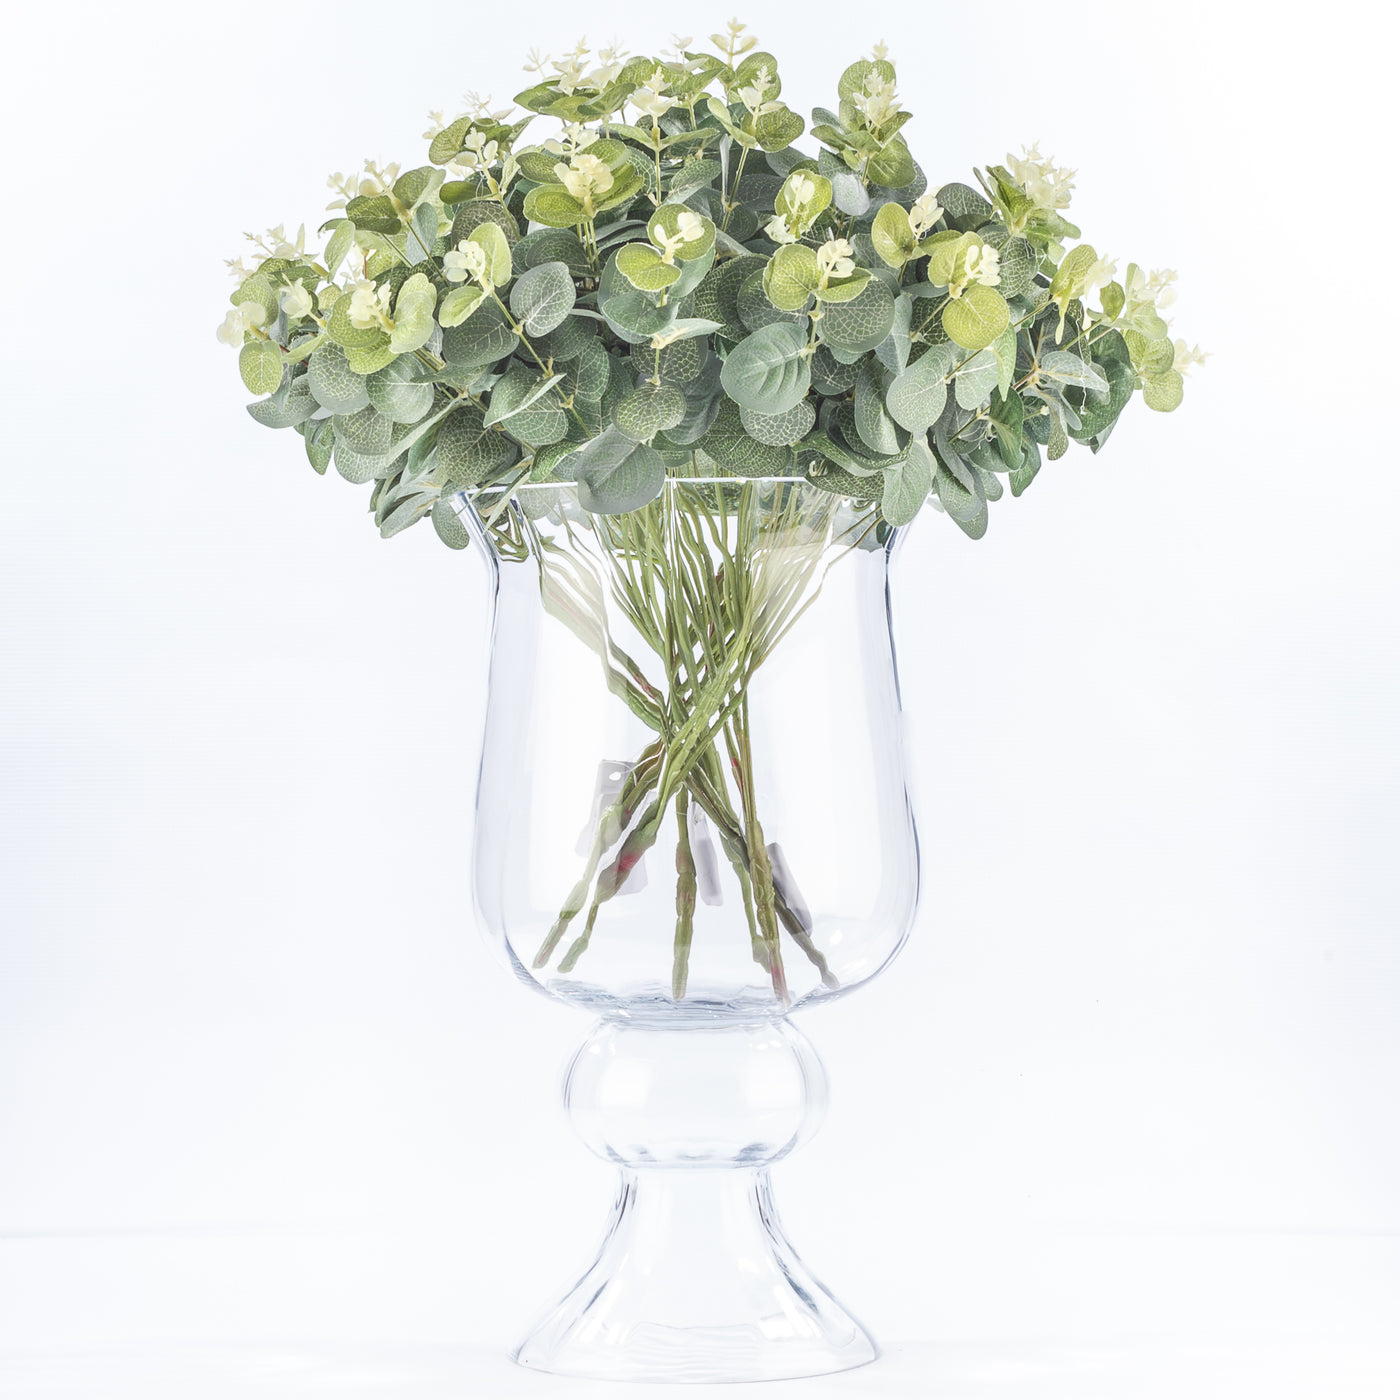 Footed Hurricane Vase - 42cm